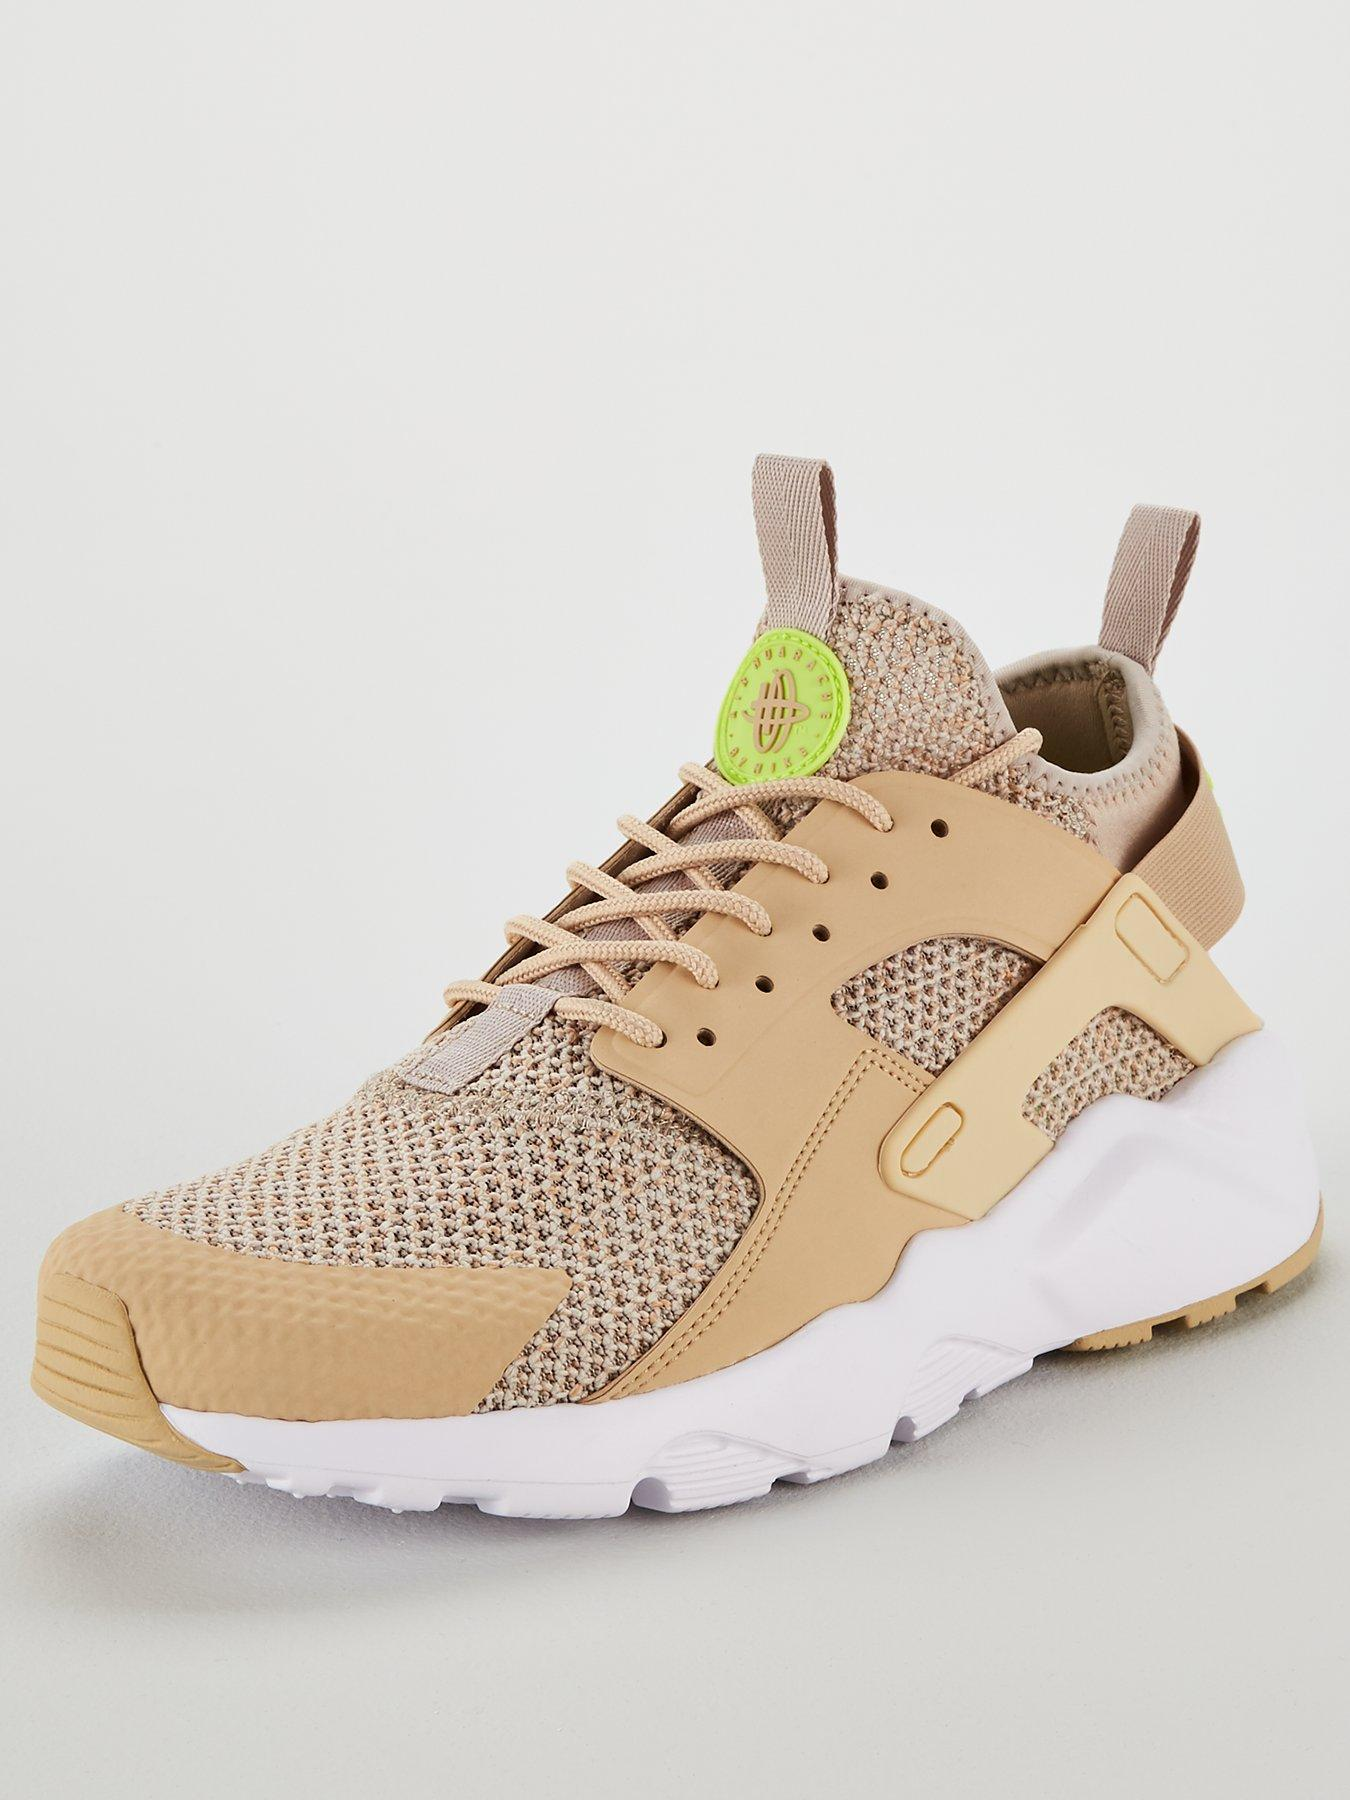 promo code 56a9a bbc4d promo code for nike air huarache run ultra se 9ab26 02bf6